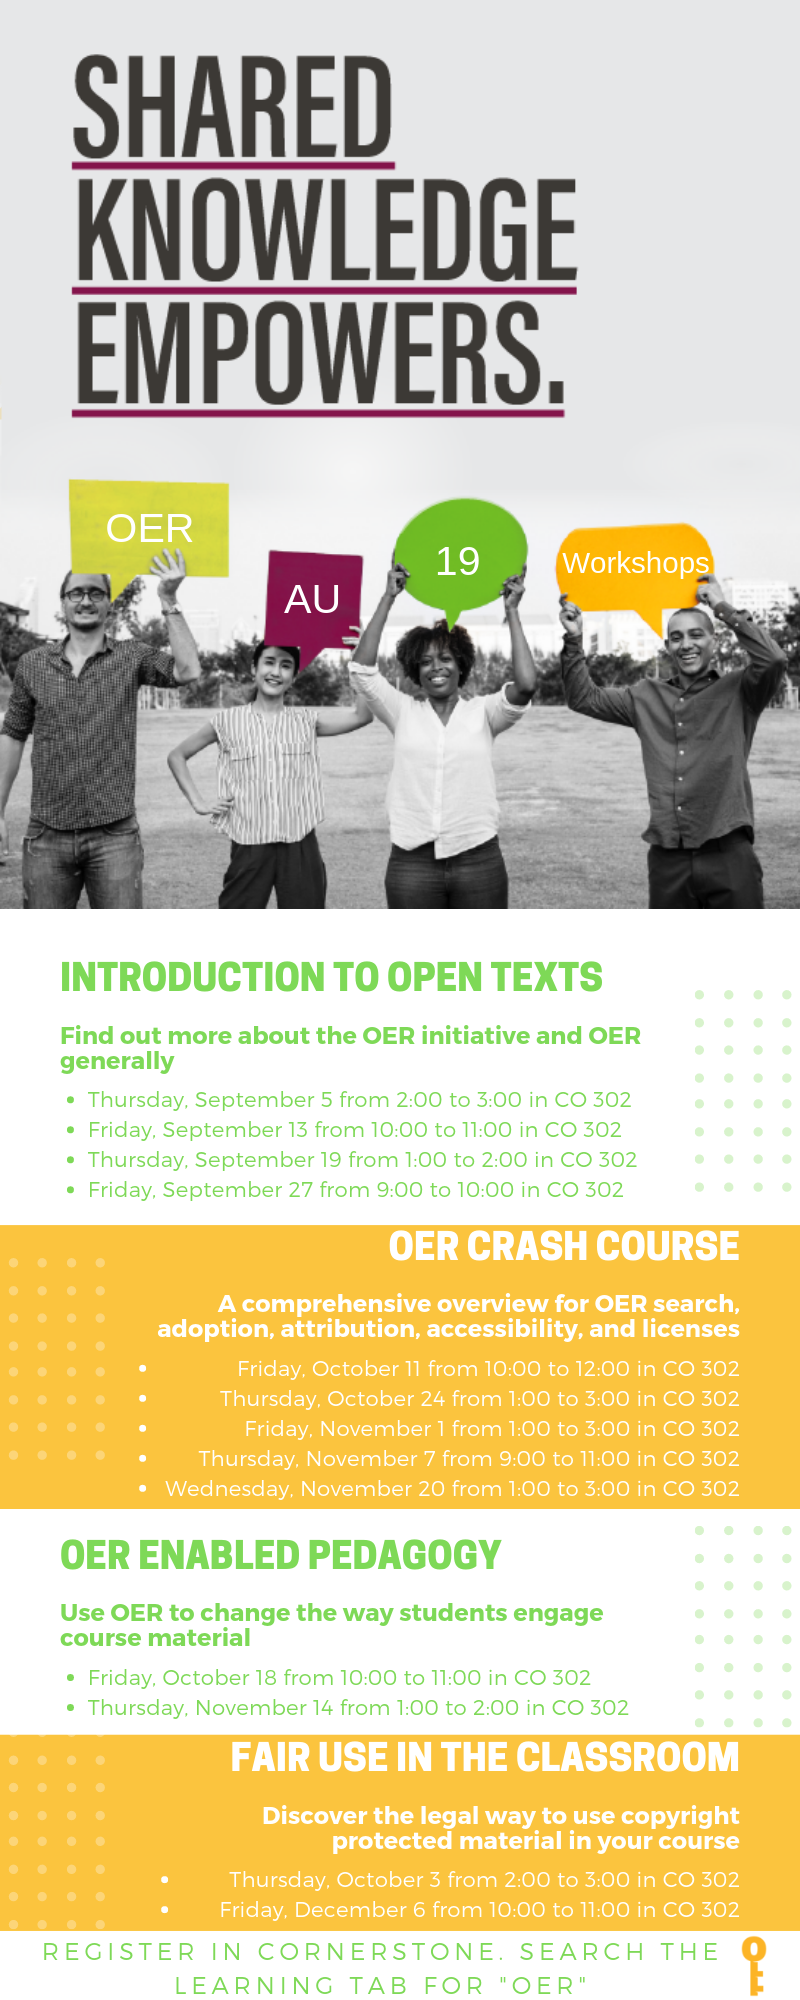 Shared Knowledge Empowers OER Autumn 2019 Workshops All workshops held in Columbus Hall 302 Register in Cornerstone Intro to Open Texts September 5 from 2:00 to 3:00 i September 13 from 10:00 to 11:00 September 19 from 1:00 to 2:00  September 27 from 9:00 to 10:00 OER Crash Course October 11 from 10:00 to noon October 24 from 1:00 to 3:00 November 1 from 1;00 to 3:00 November 7 from 9:00 to 11:00 November 20 from 1:00 to 3:00 OER Enabled Pedagogy October 18 from 10:00 to 11:00 November 14 from 1:00 to 2:00 Fair Use in the Classroom October 3 from2:00 to 3:00 December 6 from 10:00 to 11:00